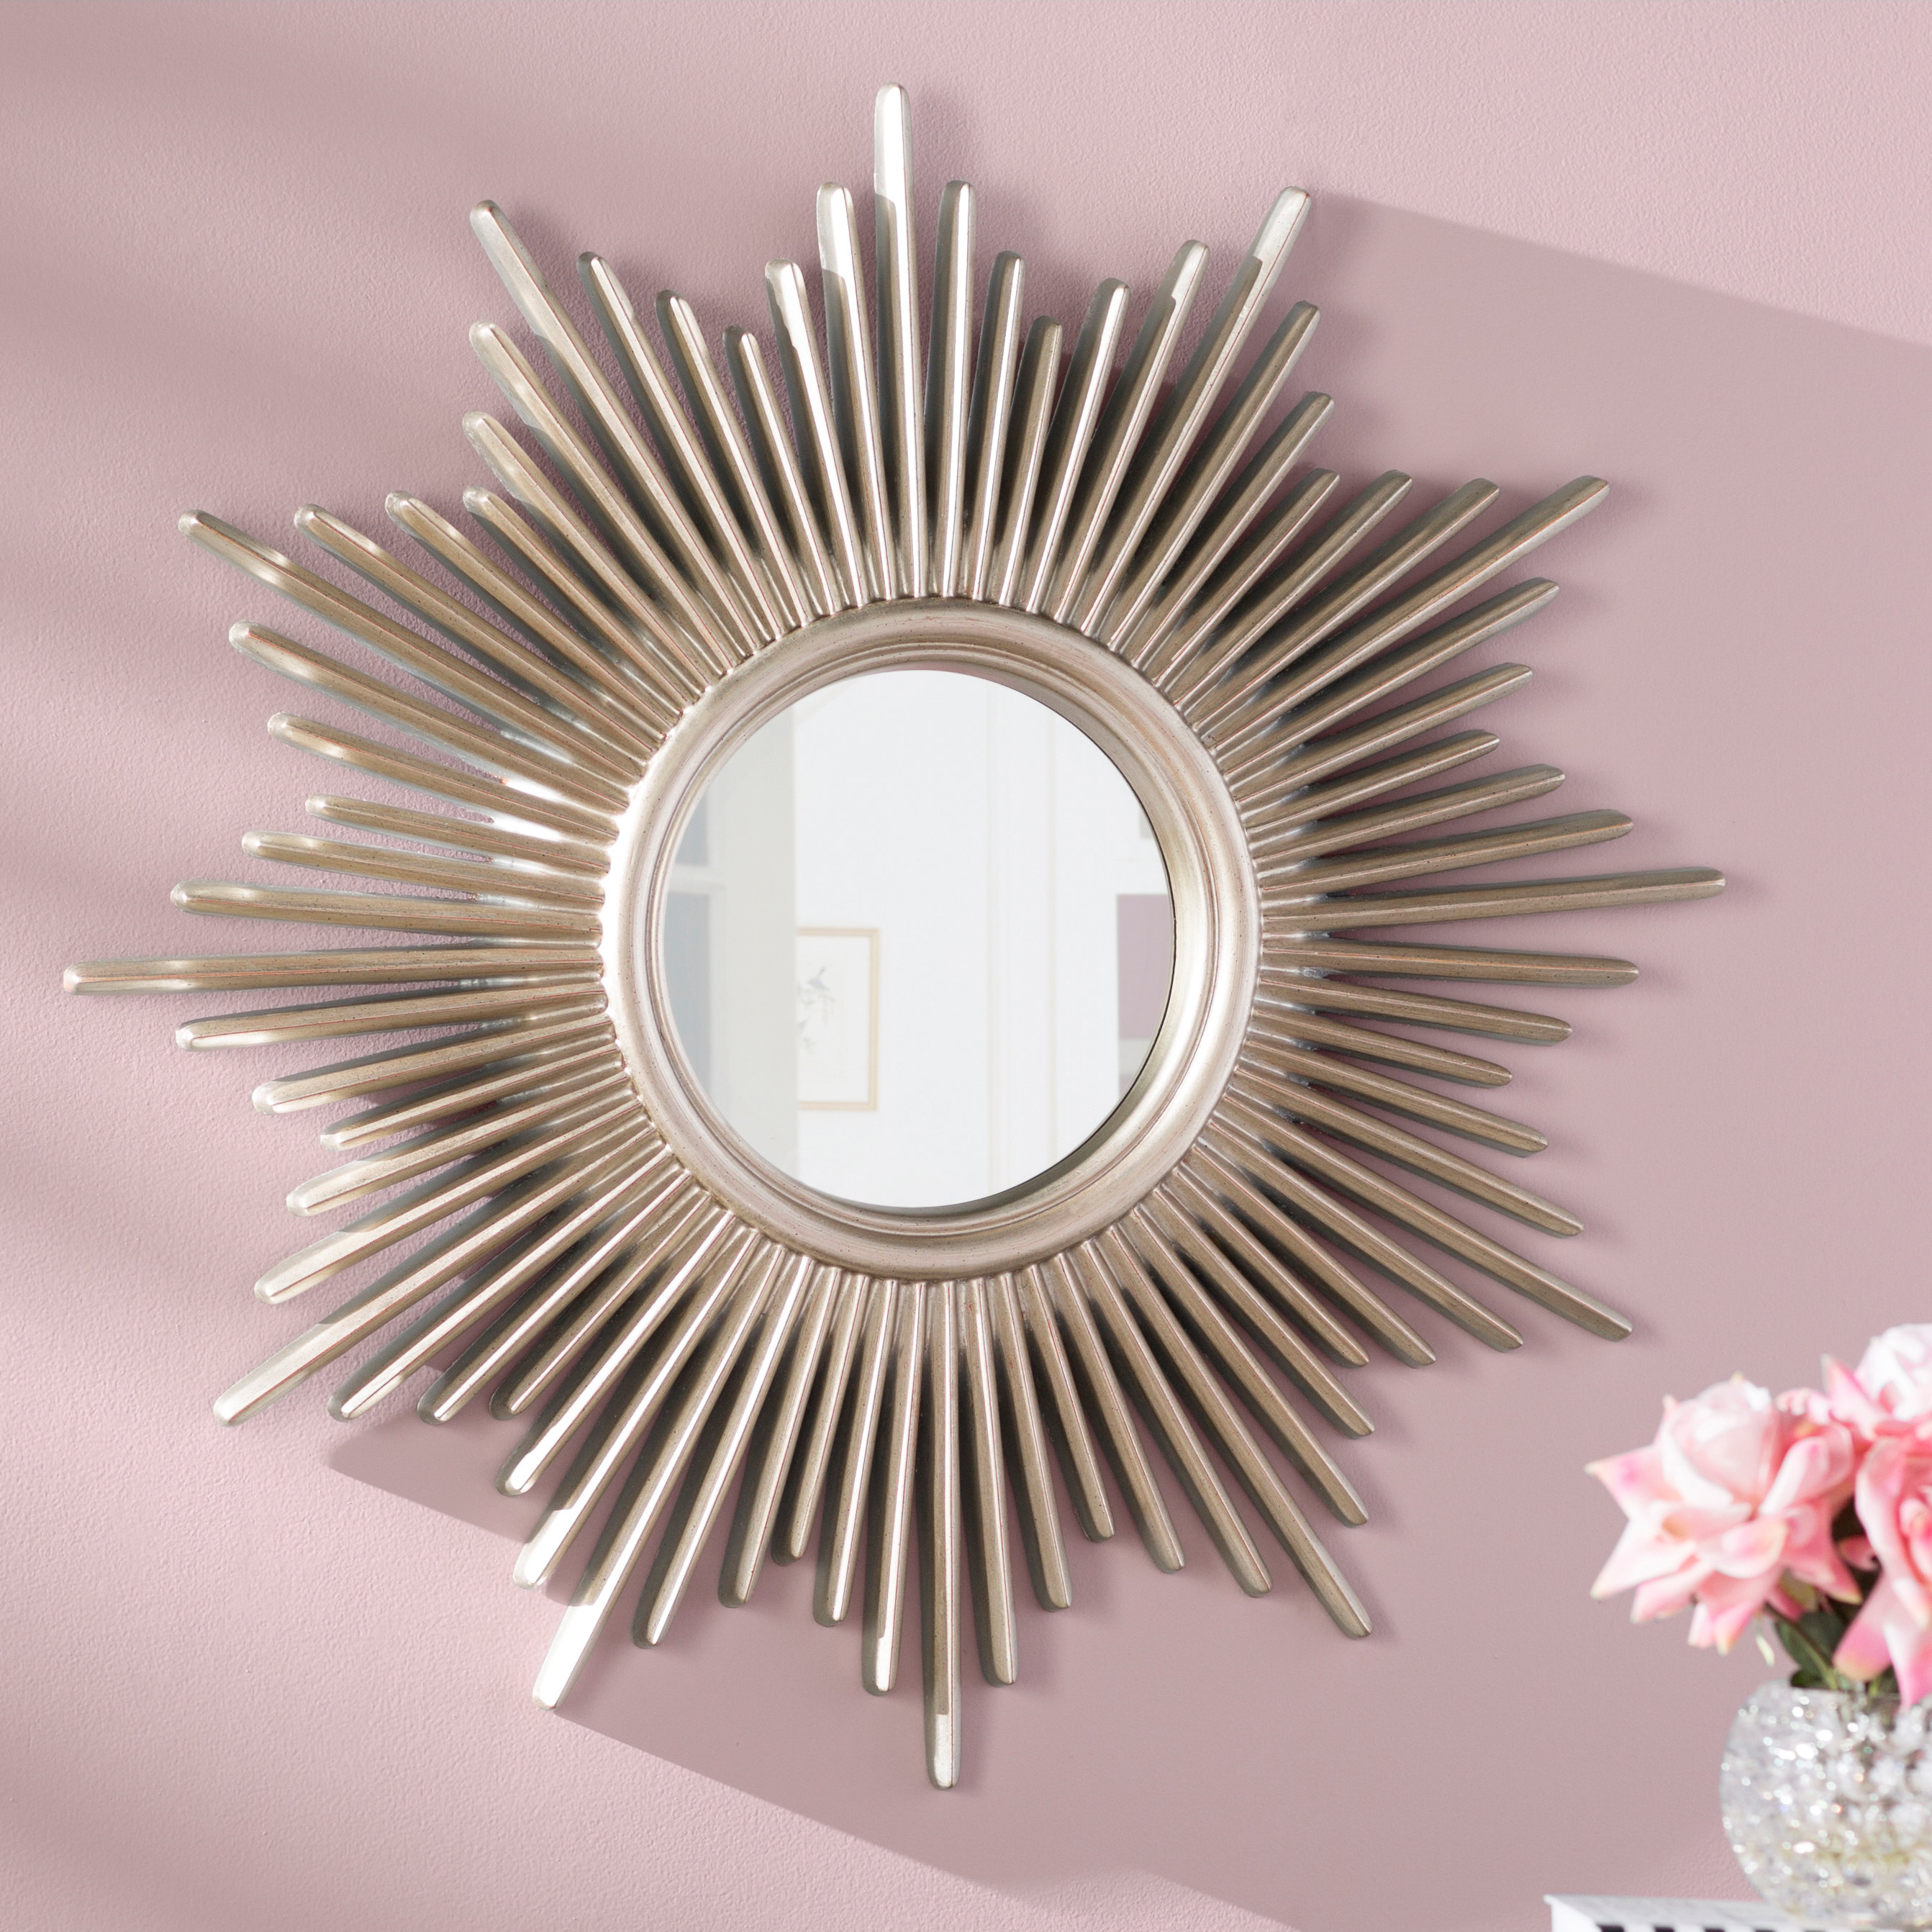 Josephson Starburst Glam Beveled Accent Wall Mirror Pertaining To Jarrod Sunburst Accent Mirrors (View 11 of 30)